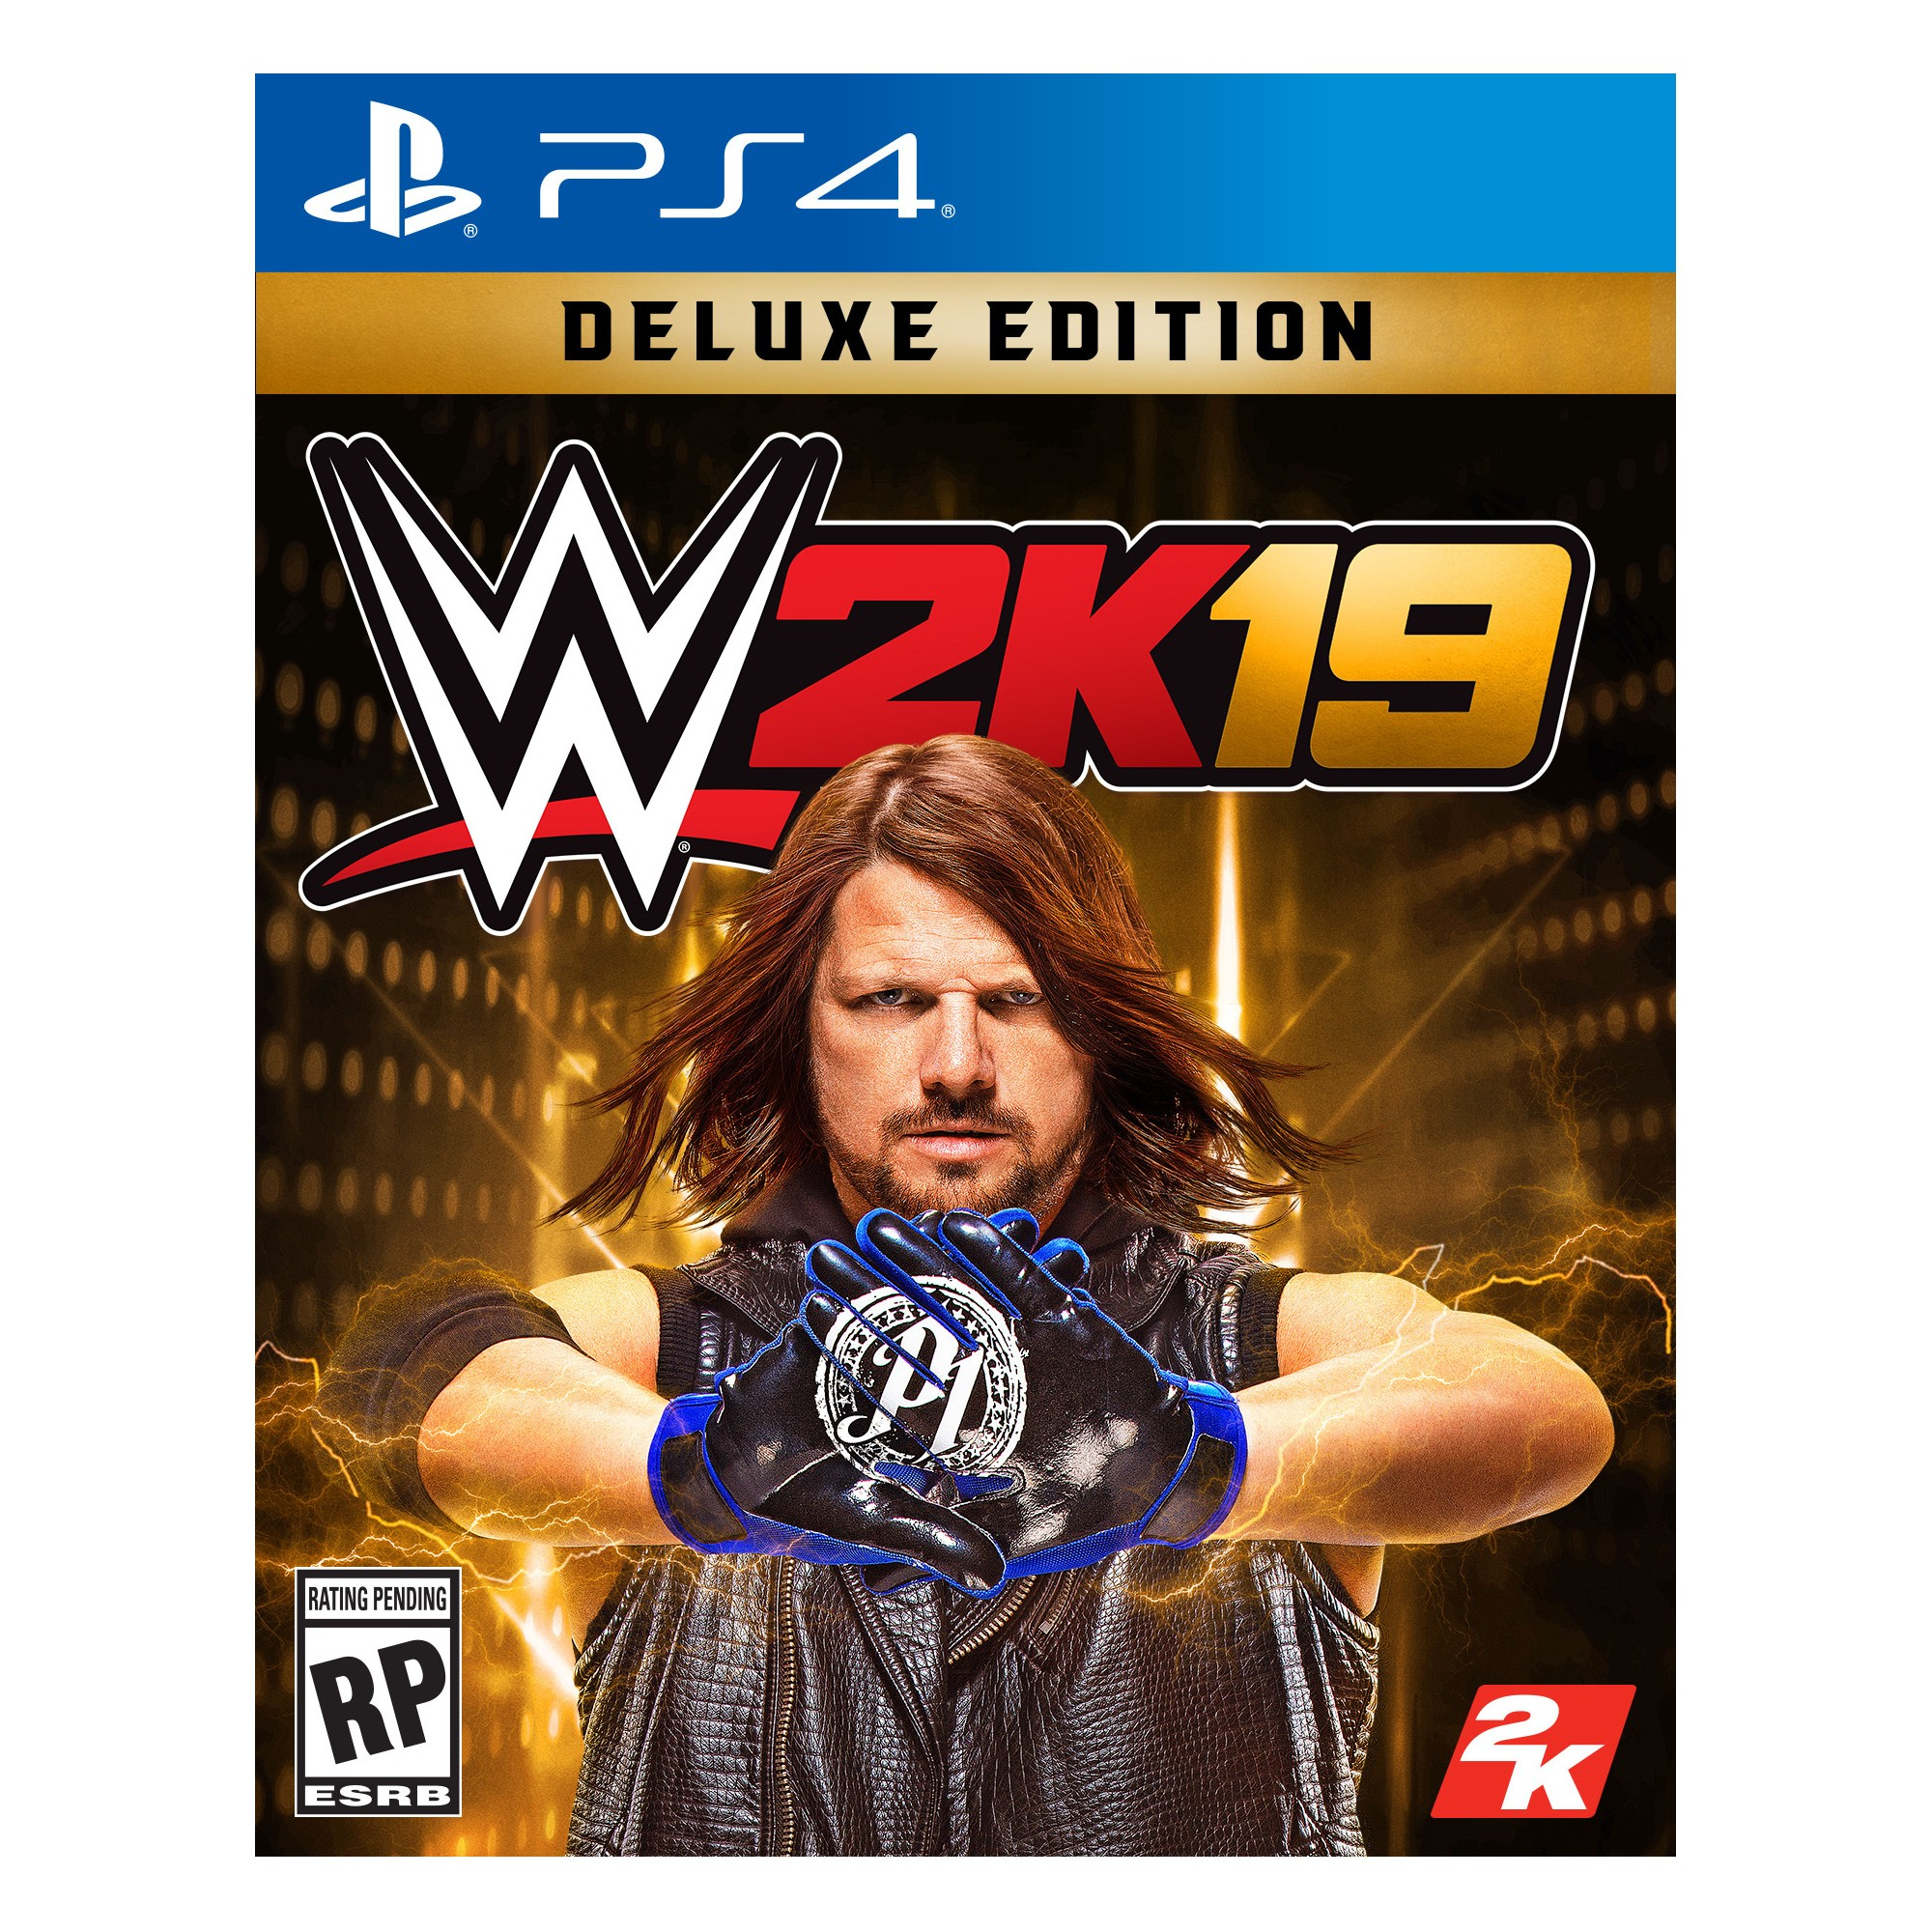 WWE 2K19 Deluxe Edition PlayStation 4 Xbox one, Wwe